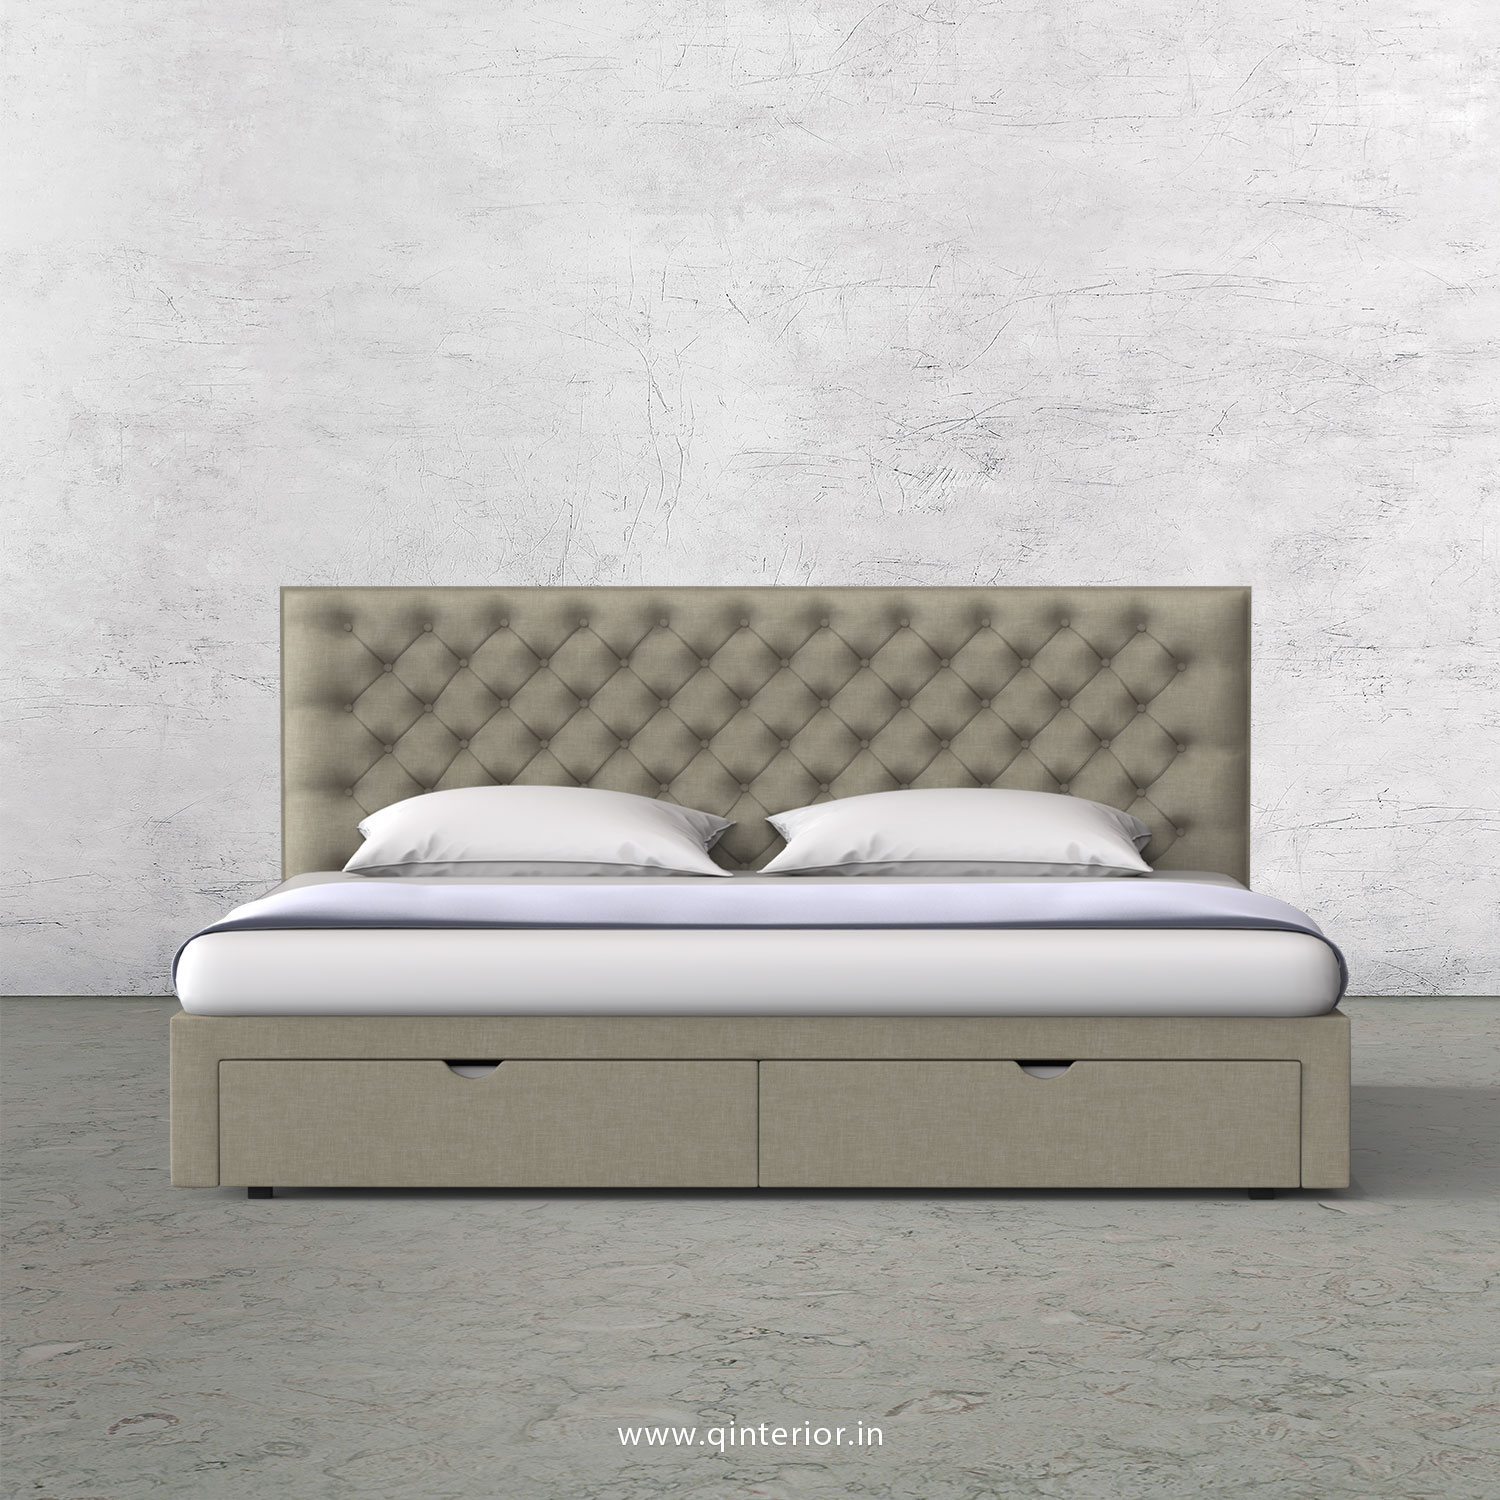 Orion King Size Storage Bed in Cotton Plain - KBD001 CP05